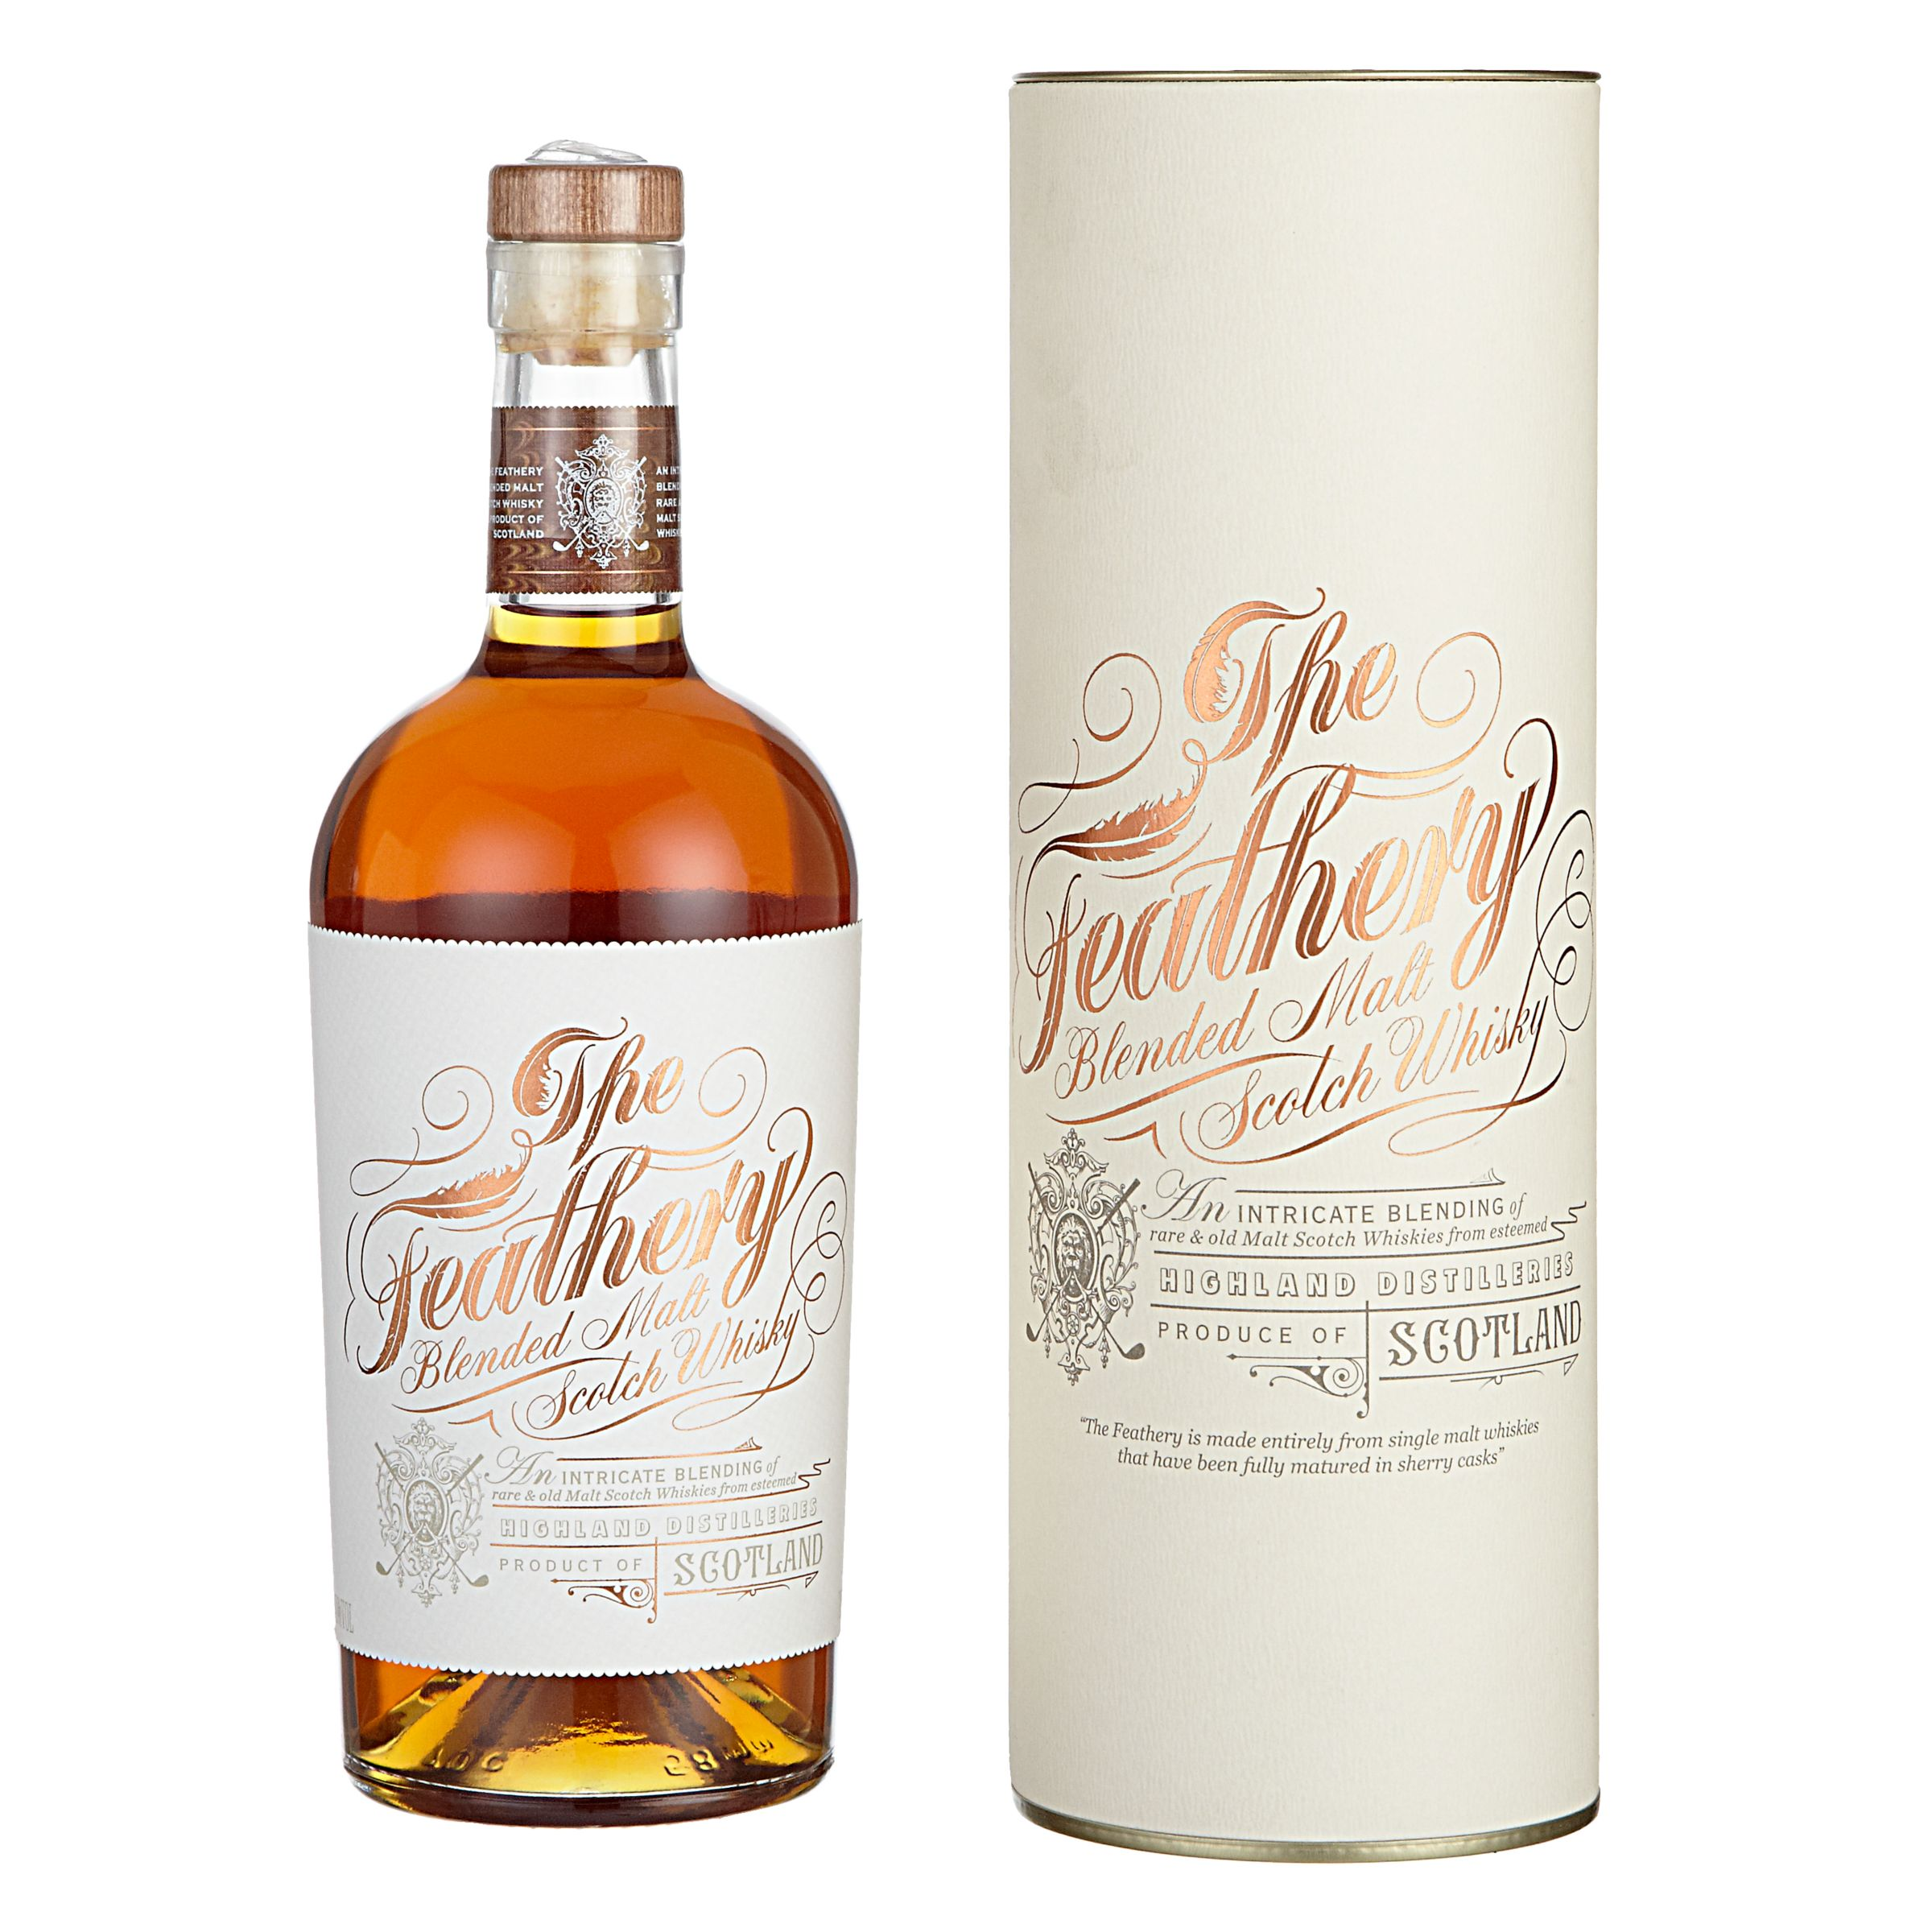 Edinburgh Gin Edinburgh Gin The Feathery Malt Scotch Whisky, 75cl